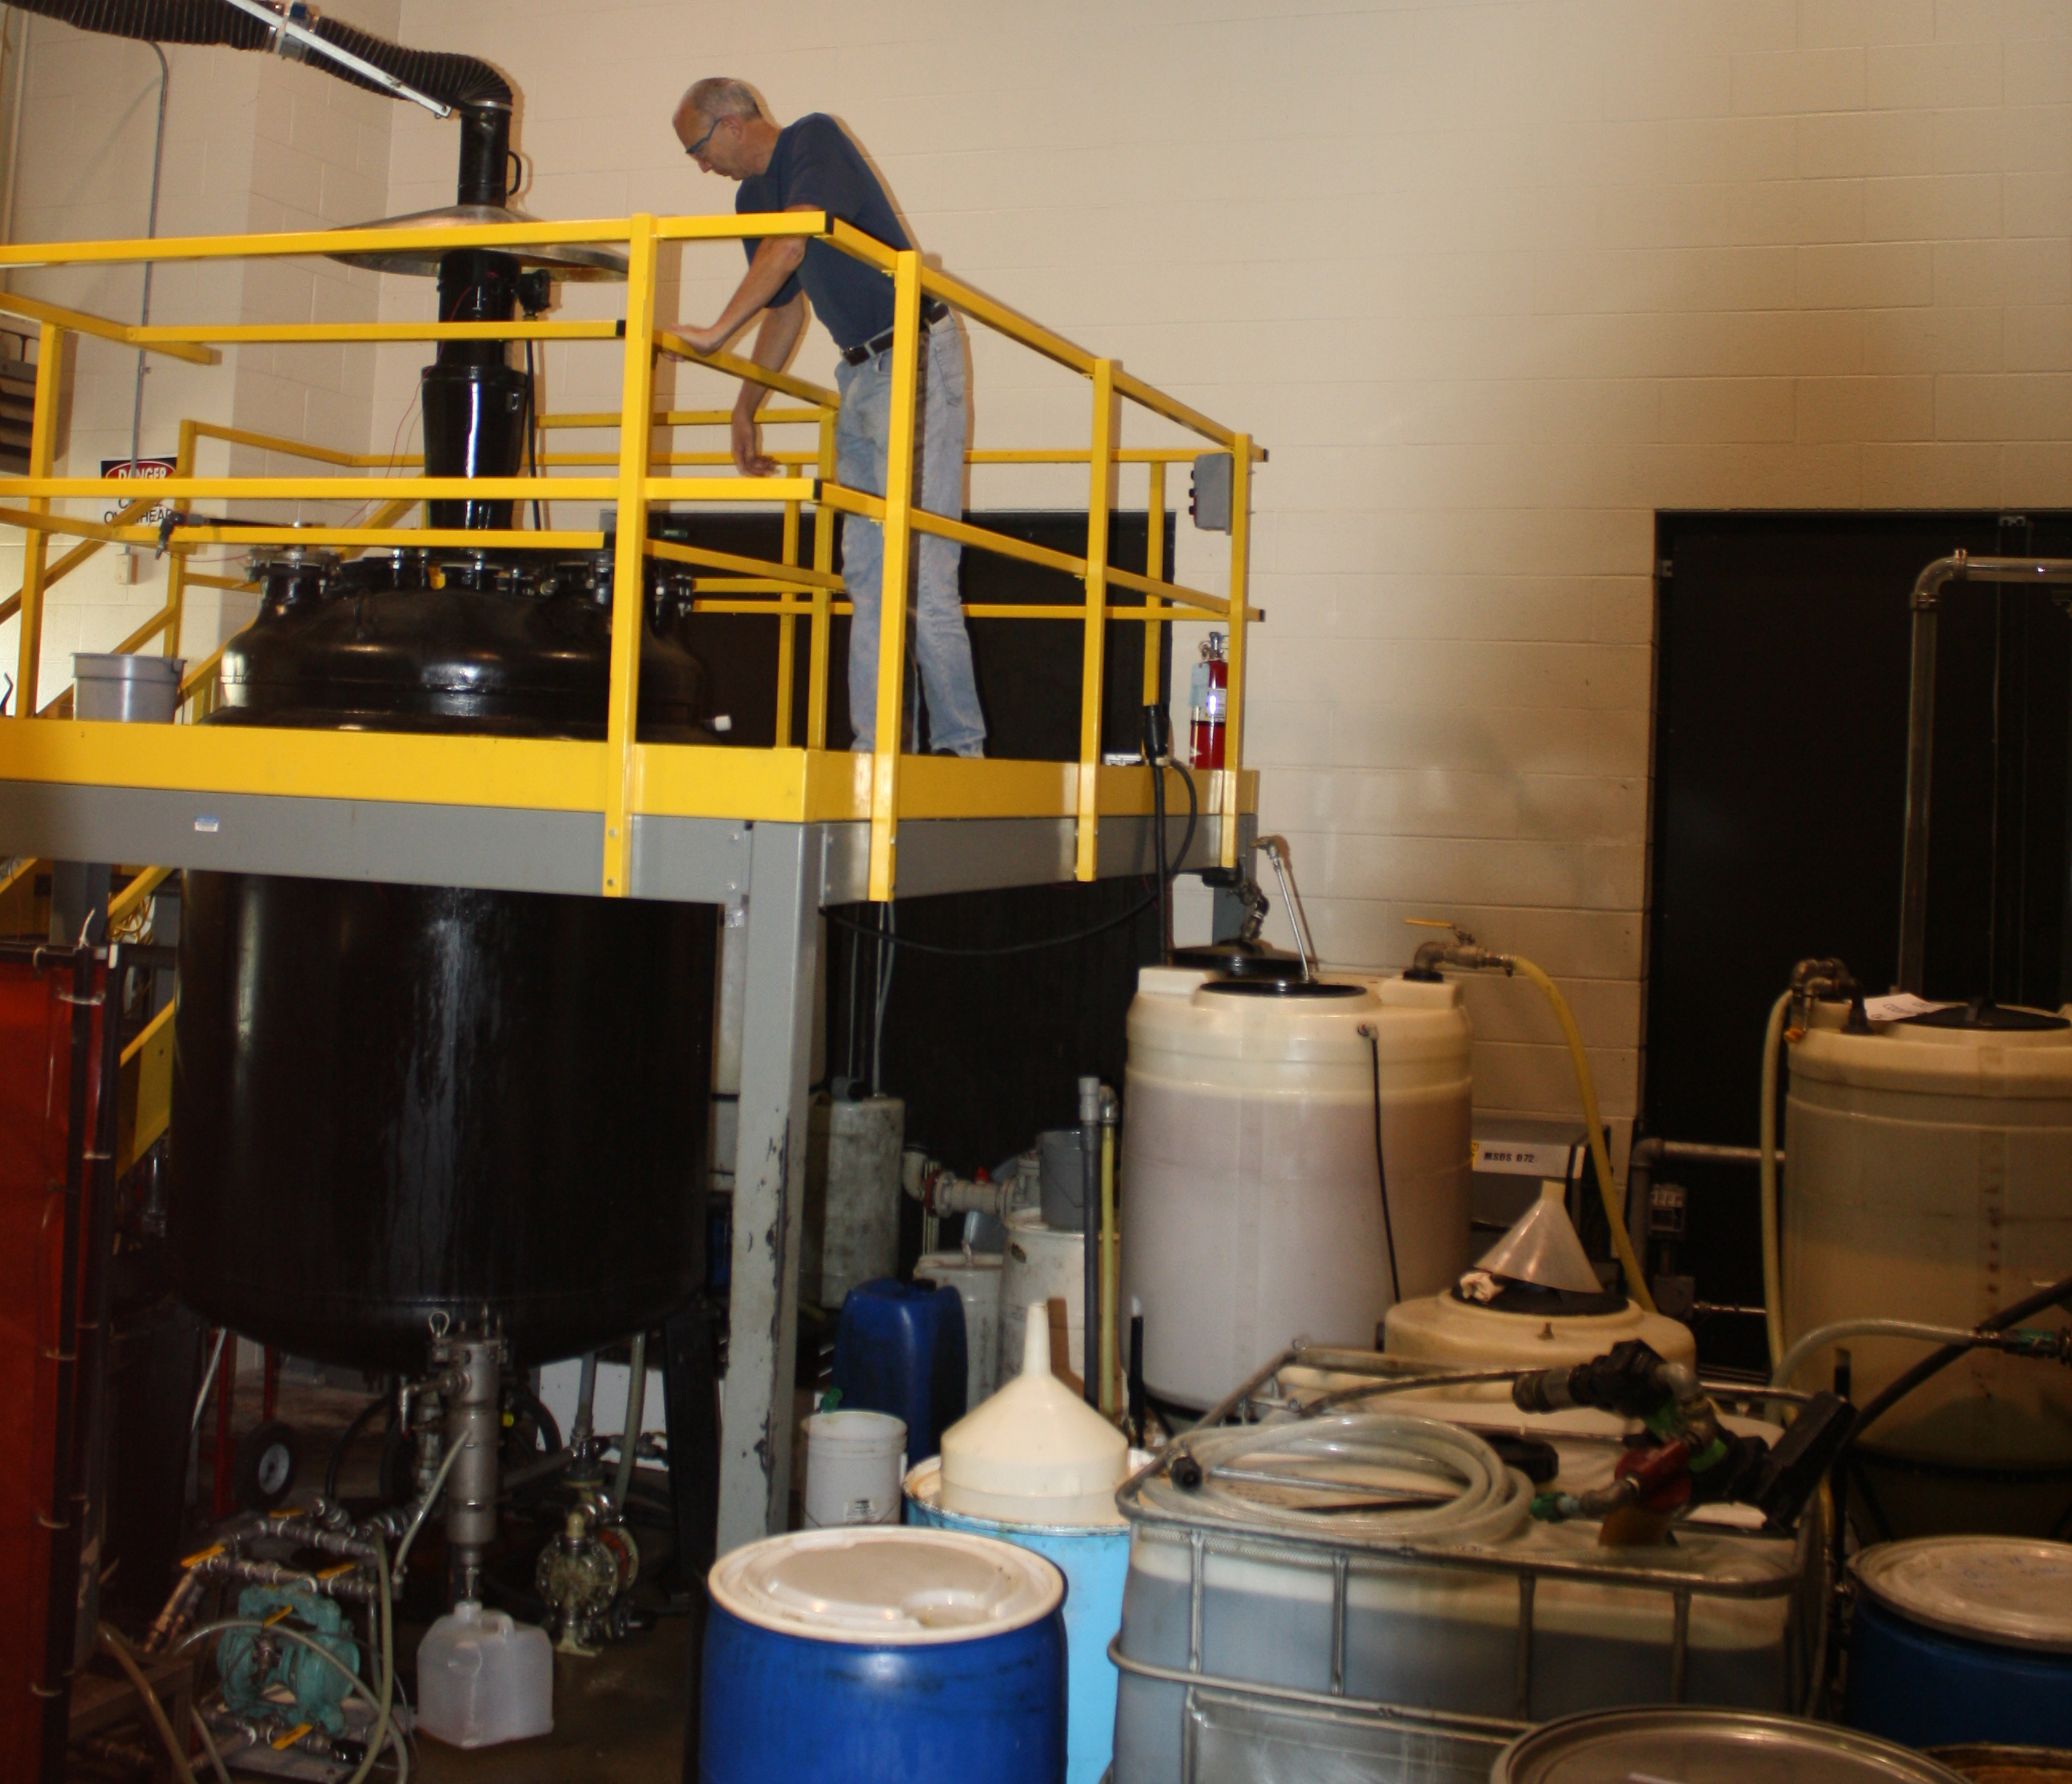 Joe Pickowitz working  with the biodiesel pilot plant that was set up  at ISTC's testing facilities.